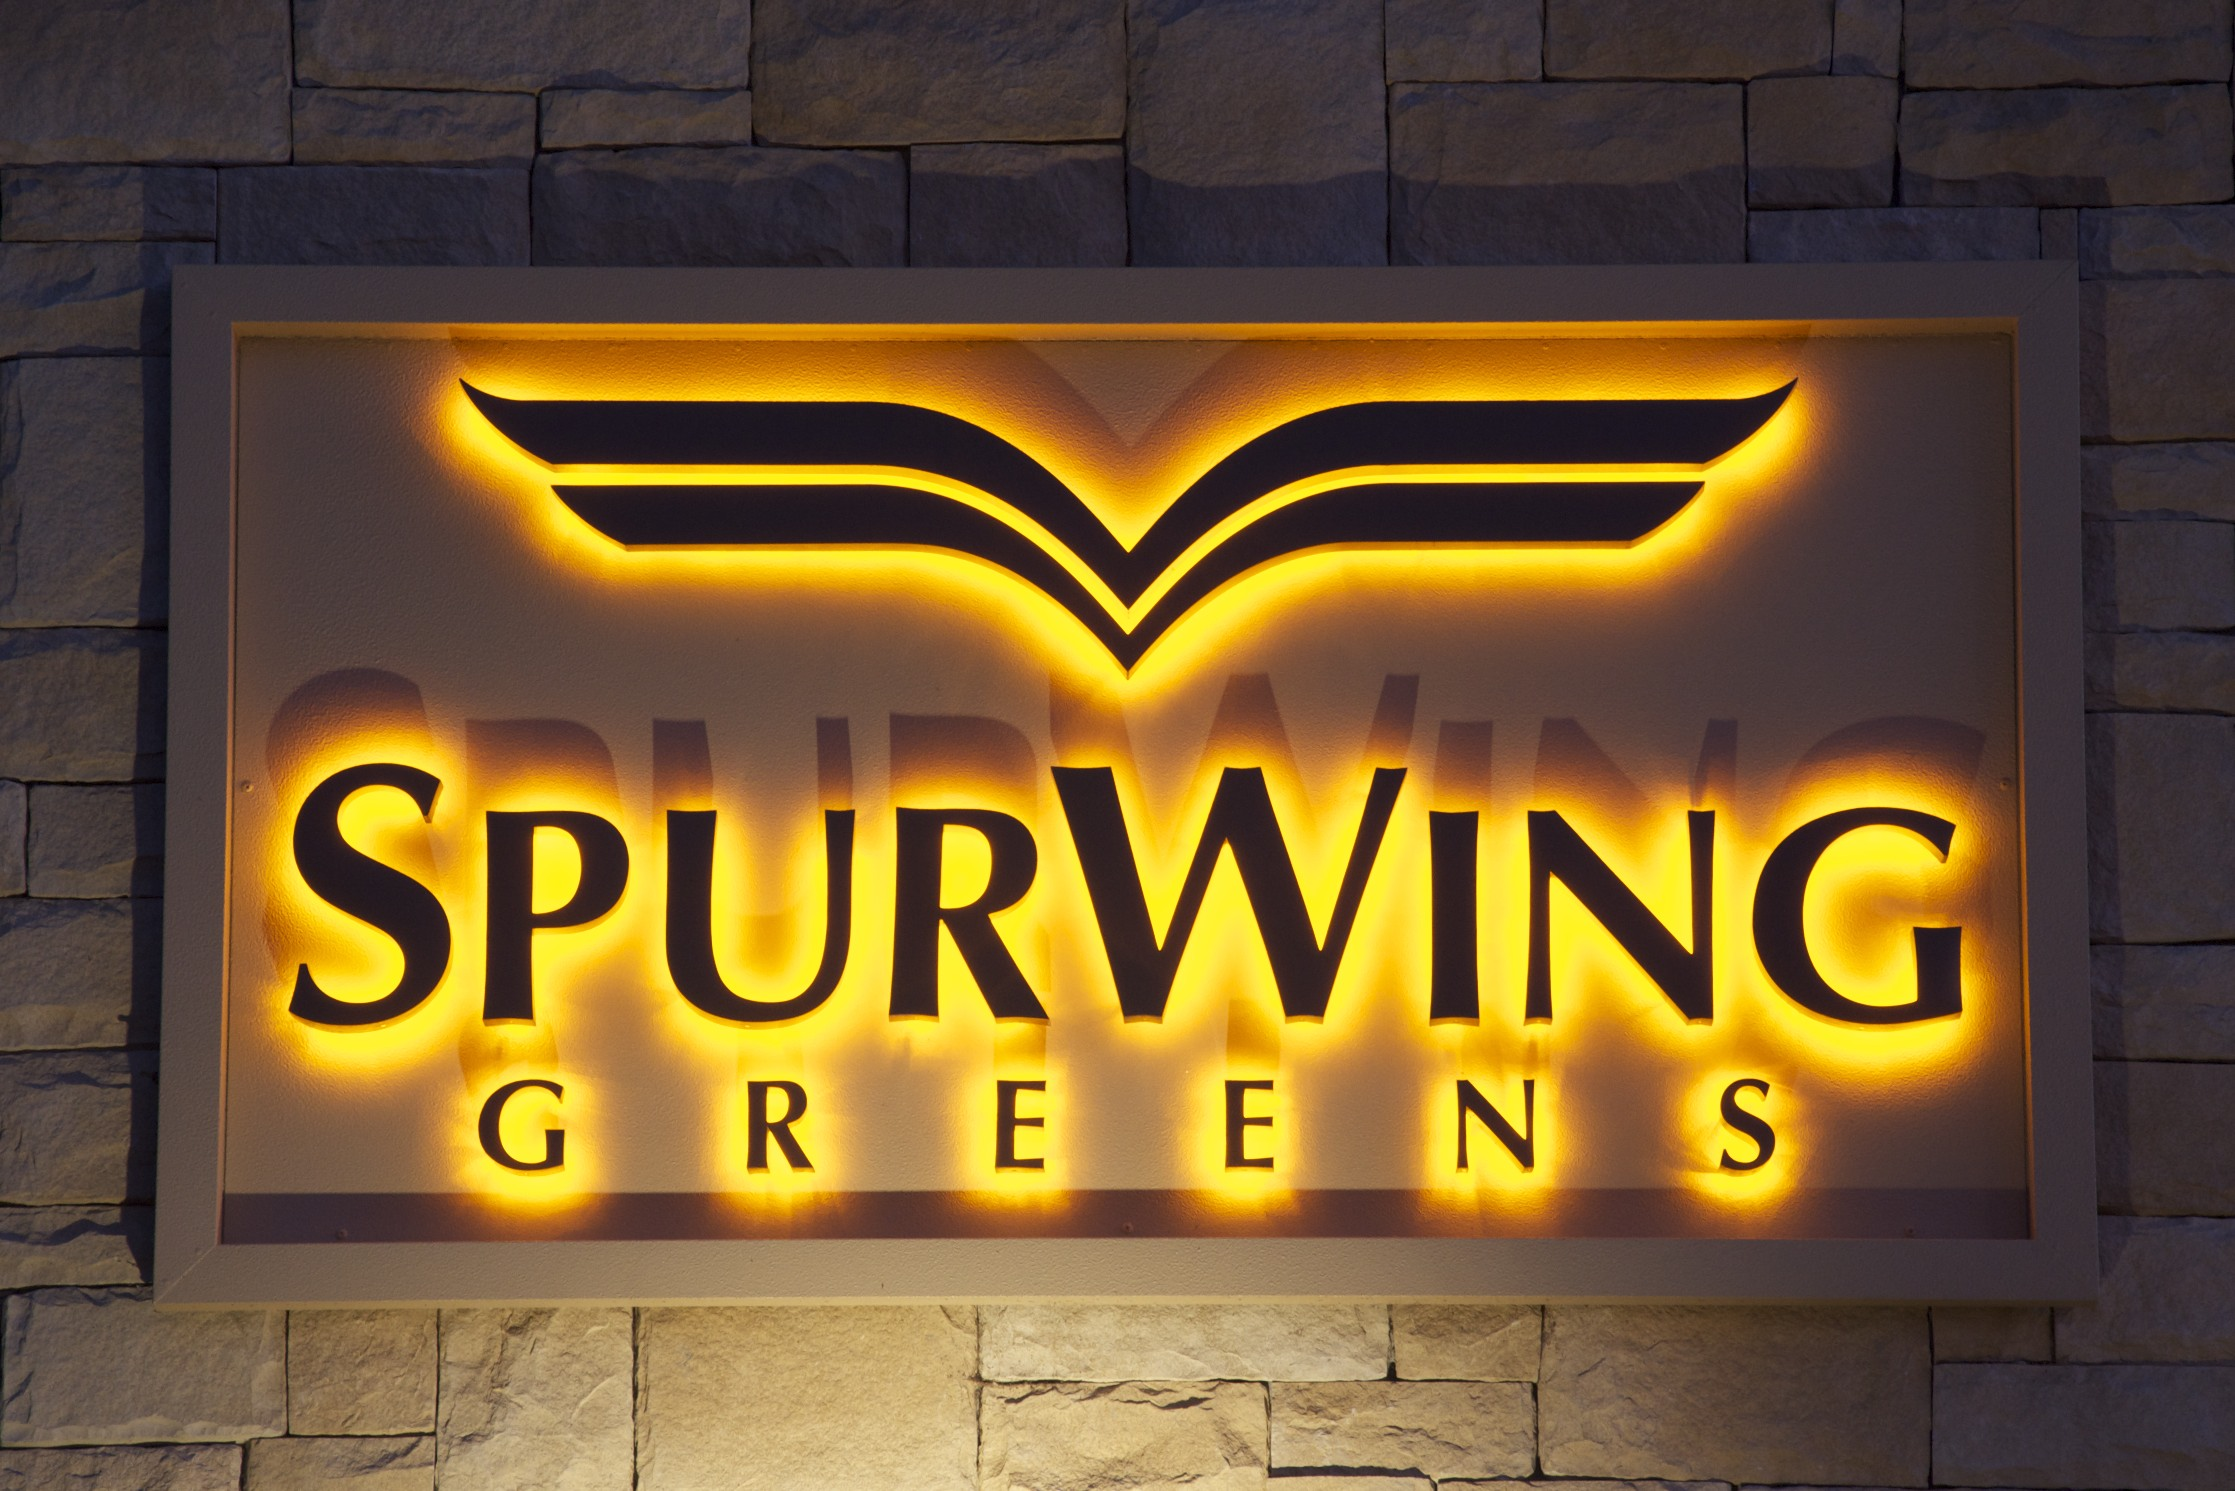 Spurwing Greens Lighted Monument